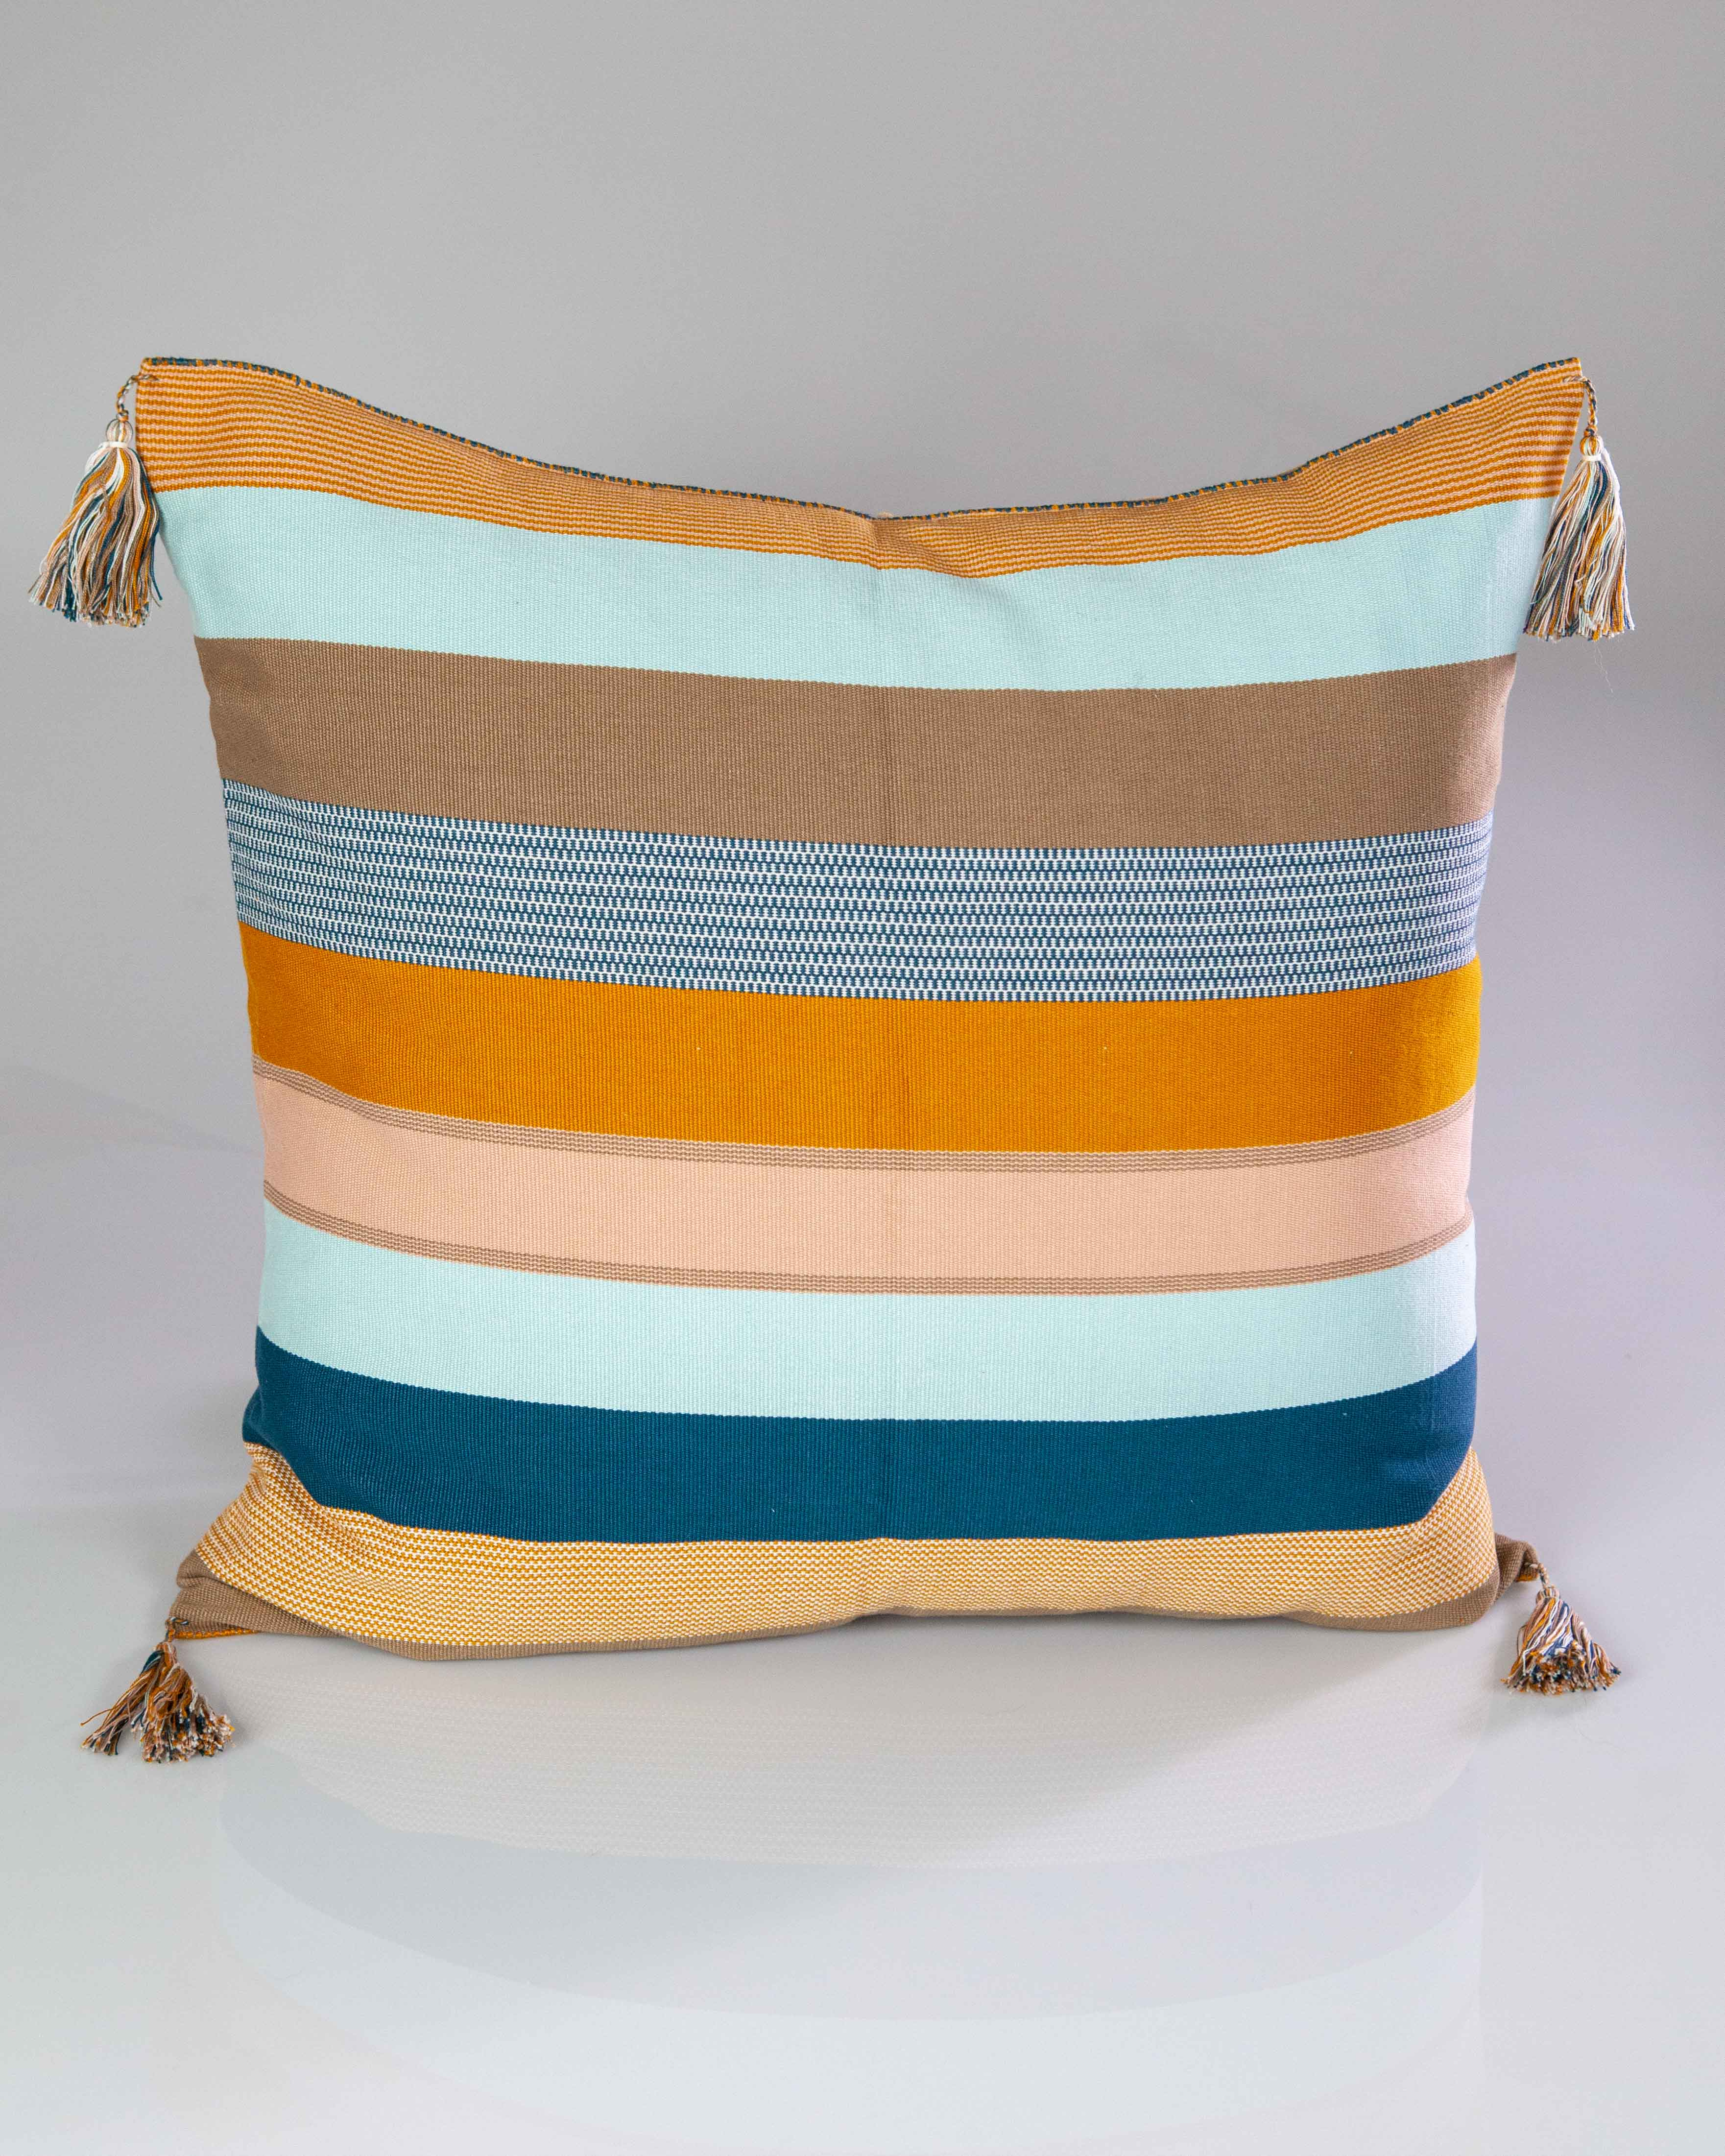 SanCri Ocaso Pillows